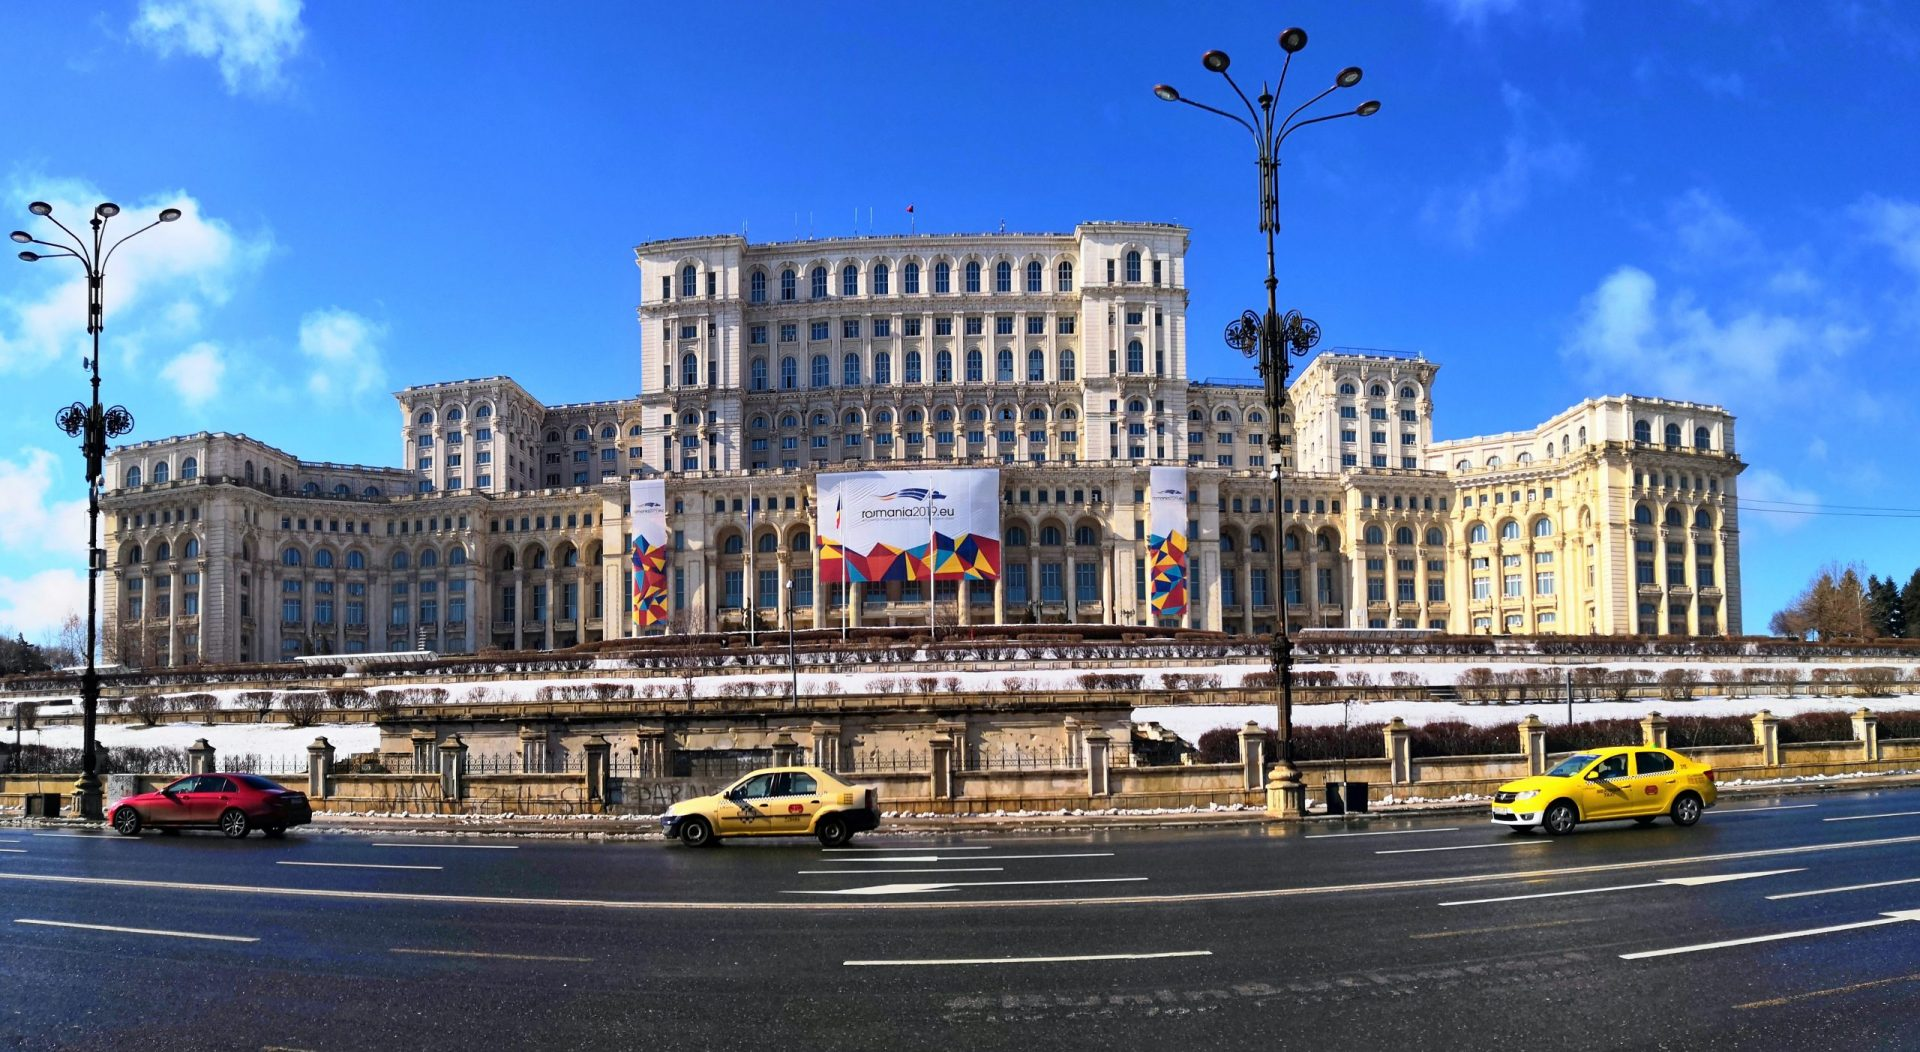 Travel photography mistakes - not adding a sense of scale - Palace of Parliament in Bucharest, Romania